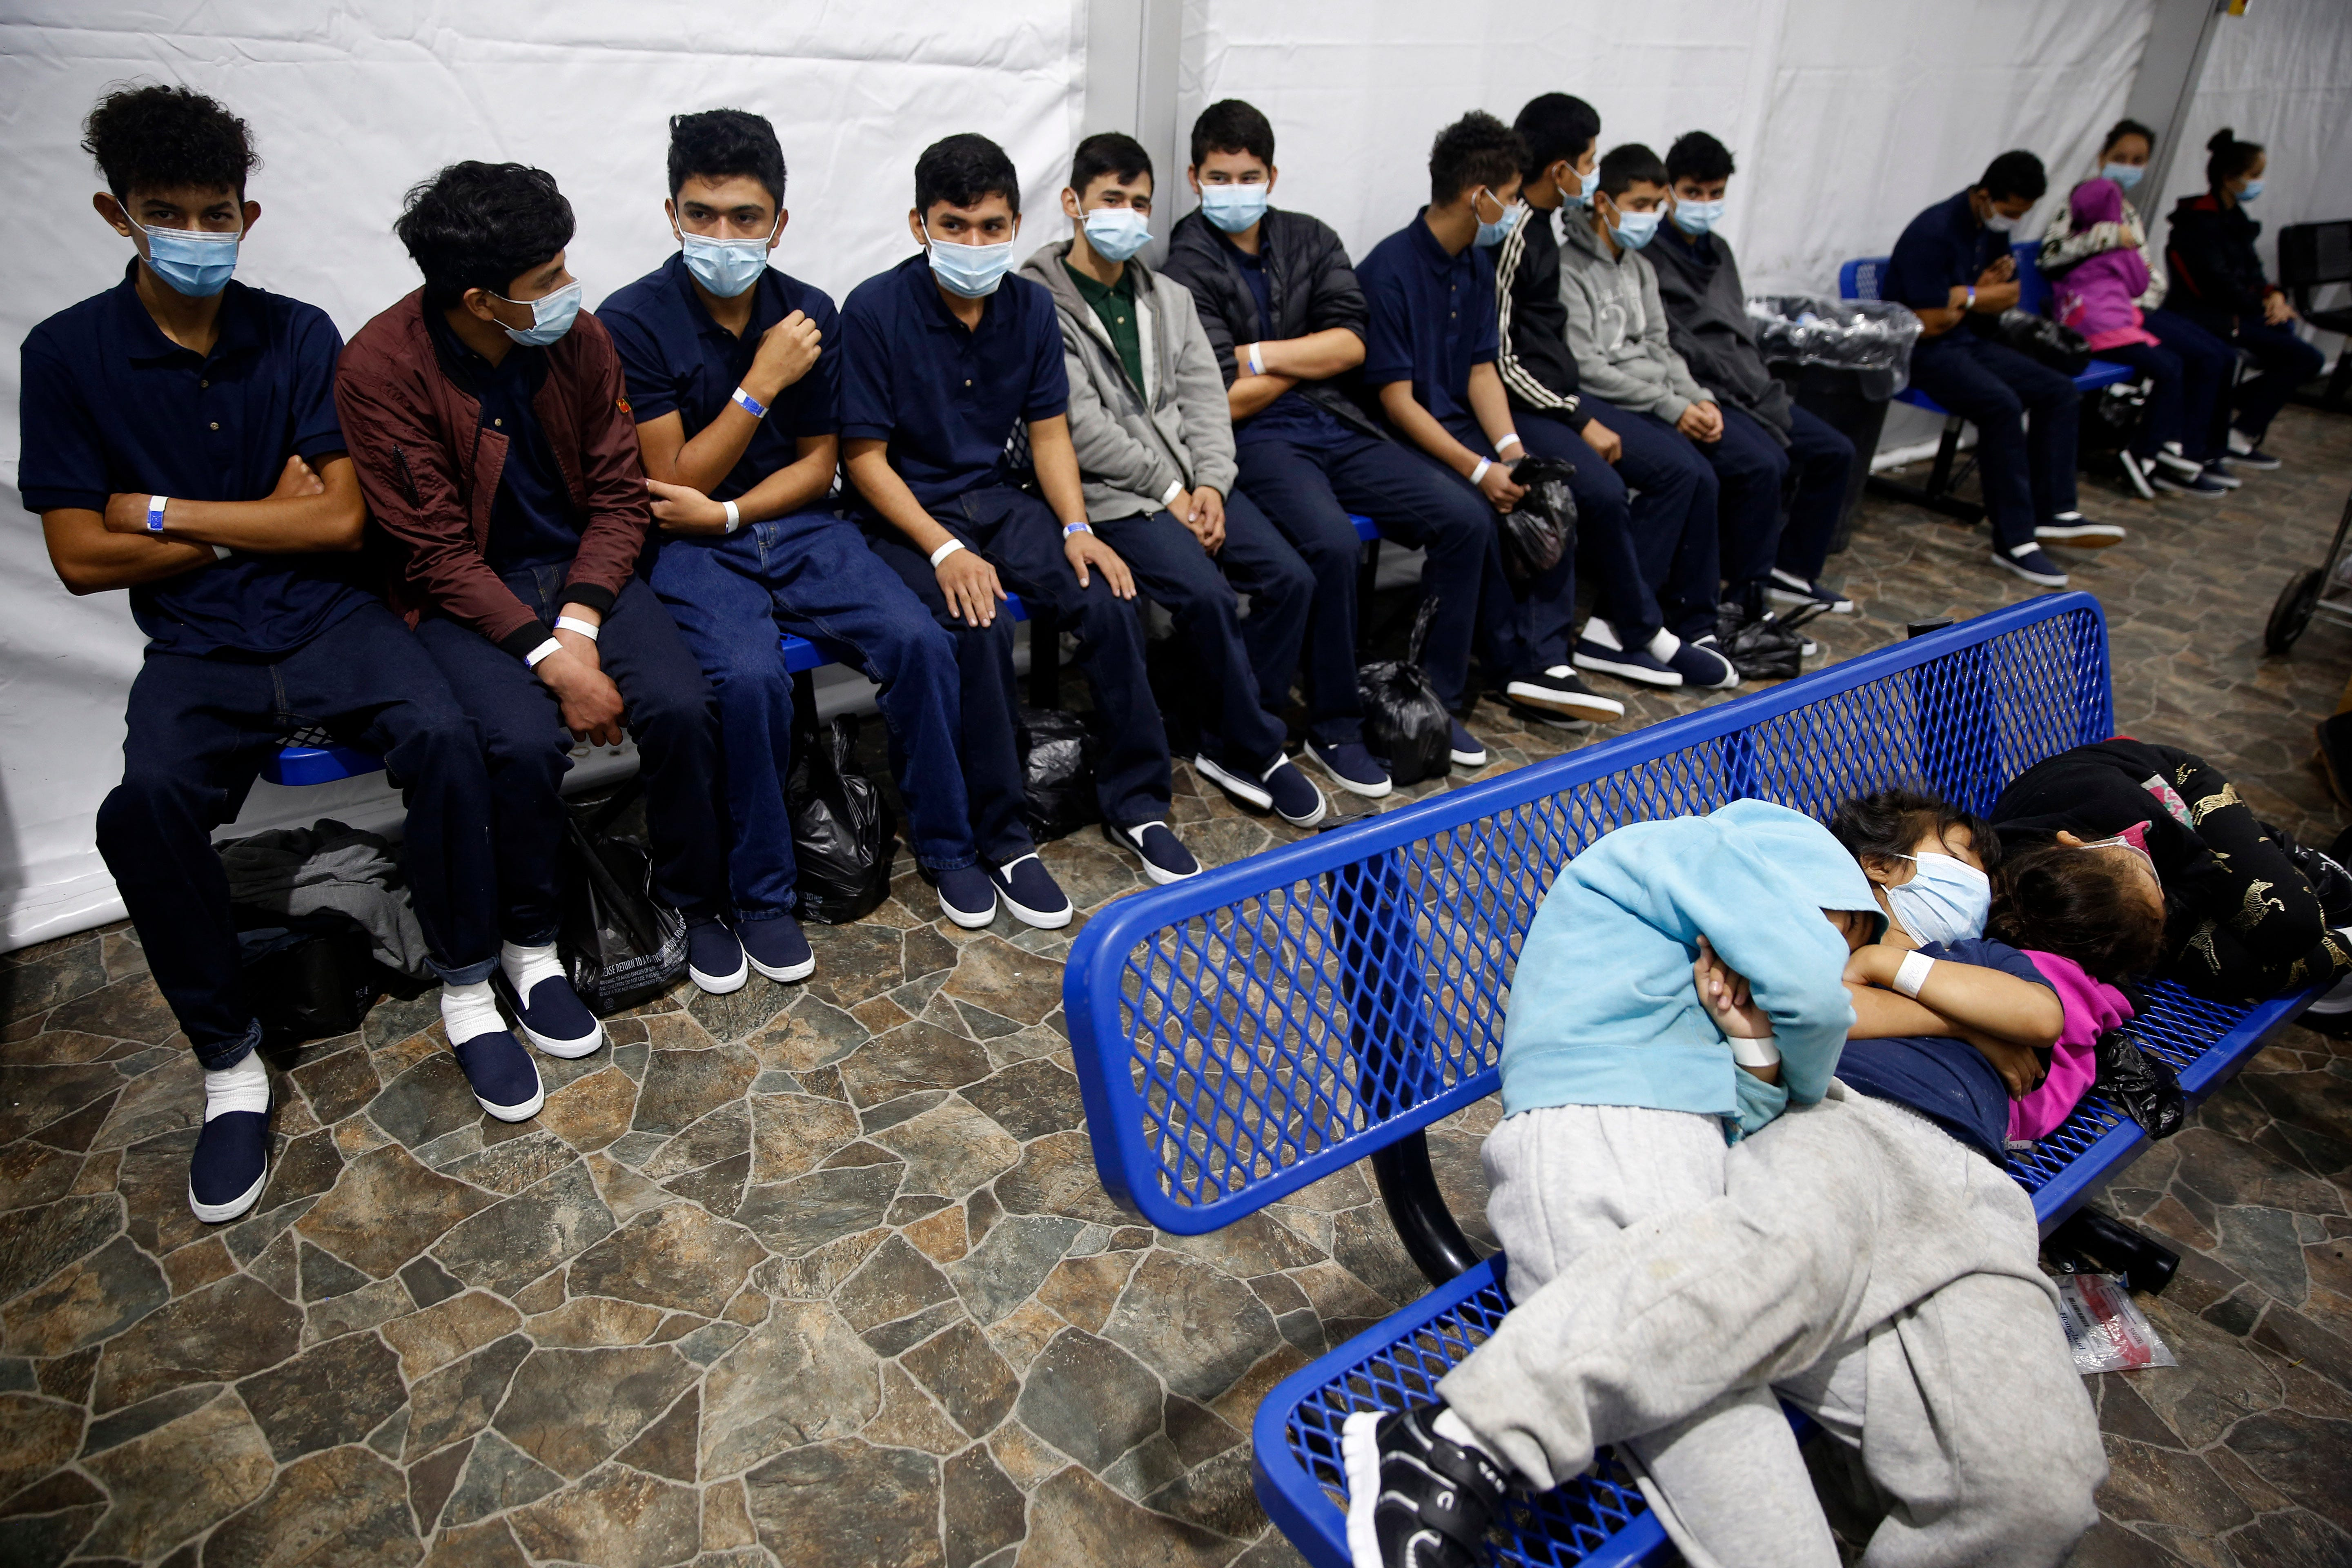 Immigrants waiting in a detention facility